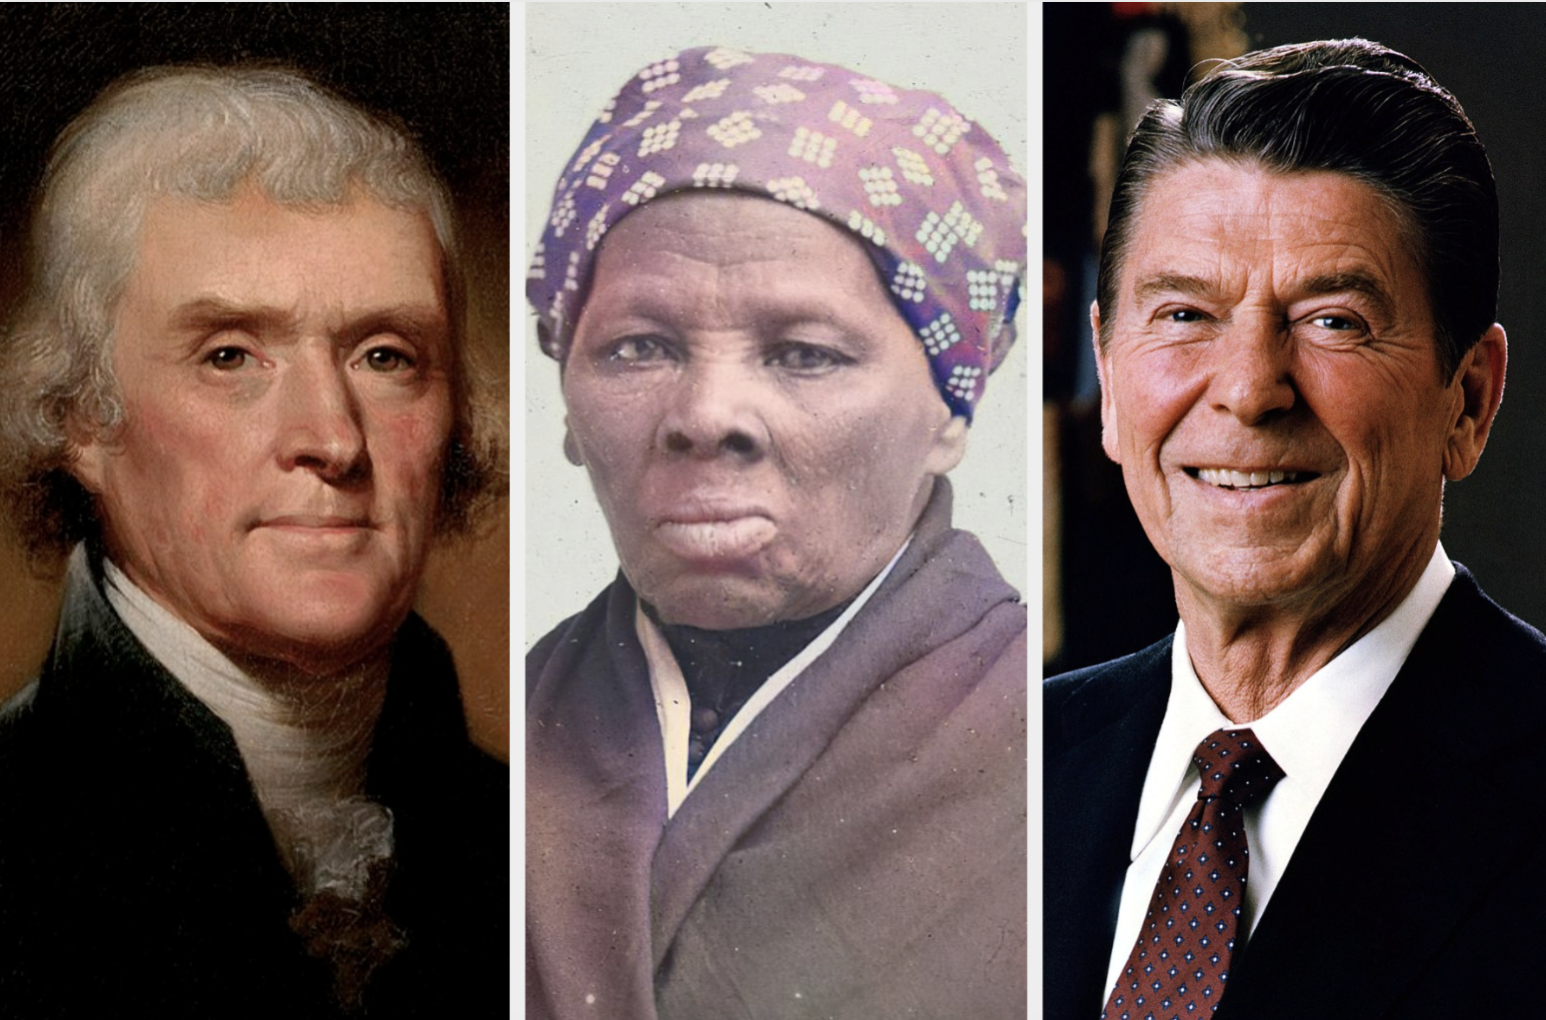 Images of Jefferson, Tubman, and Reagan